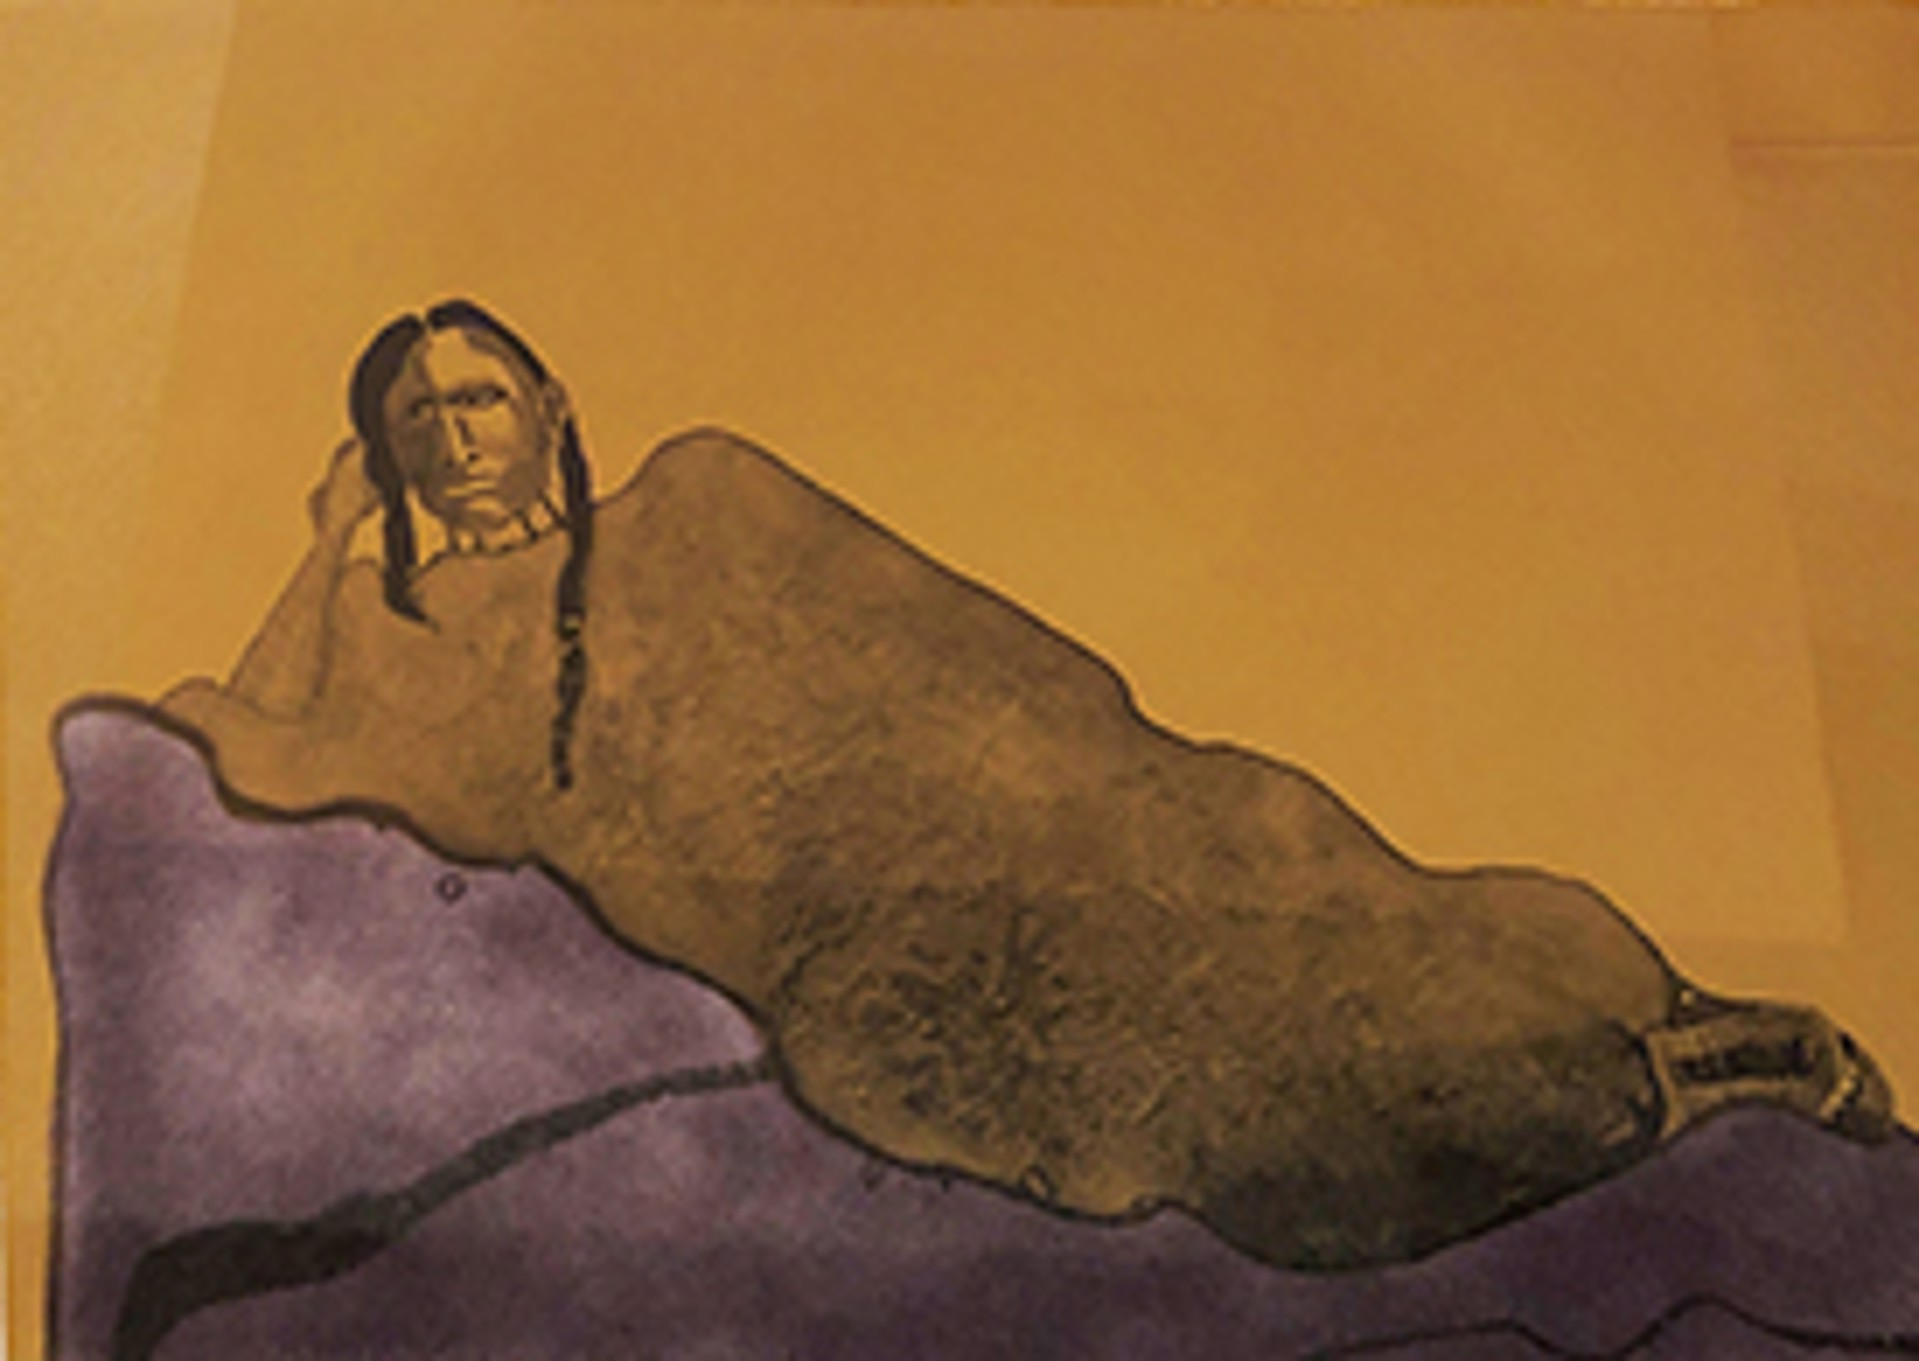 Reclining Indian Woman by Fritz Scholder